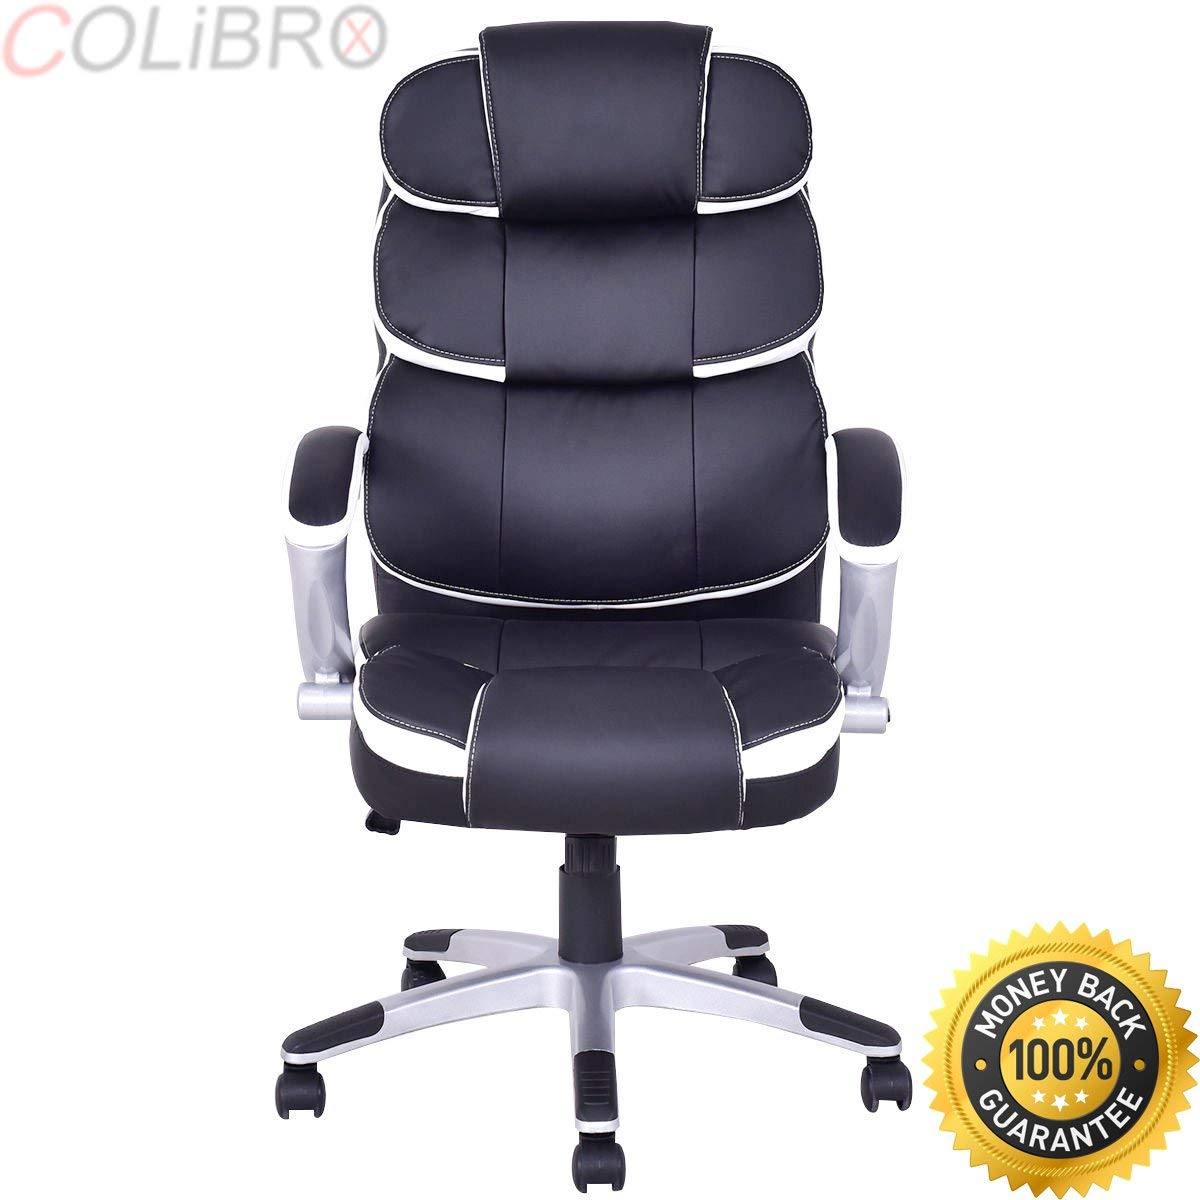 COLIBROX--New Ergonomic PU Leather High Back Executive Computer Desk Task Office Chair. bestoffice ergonomic pu leather high back office chair. high back computer chair. office chairs on sale amazon.